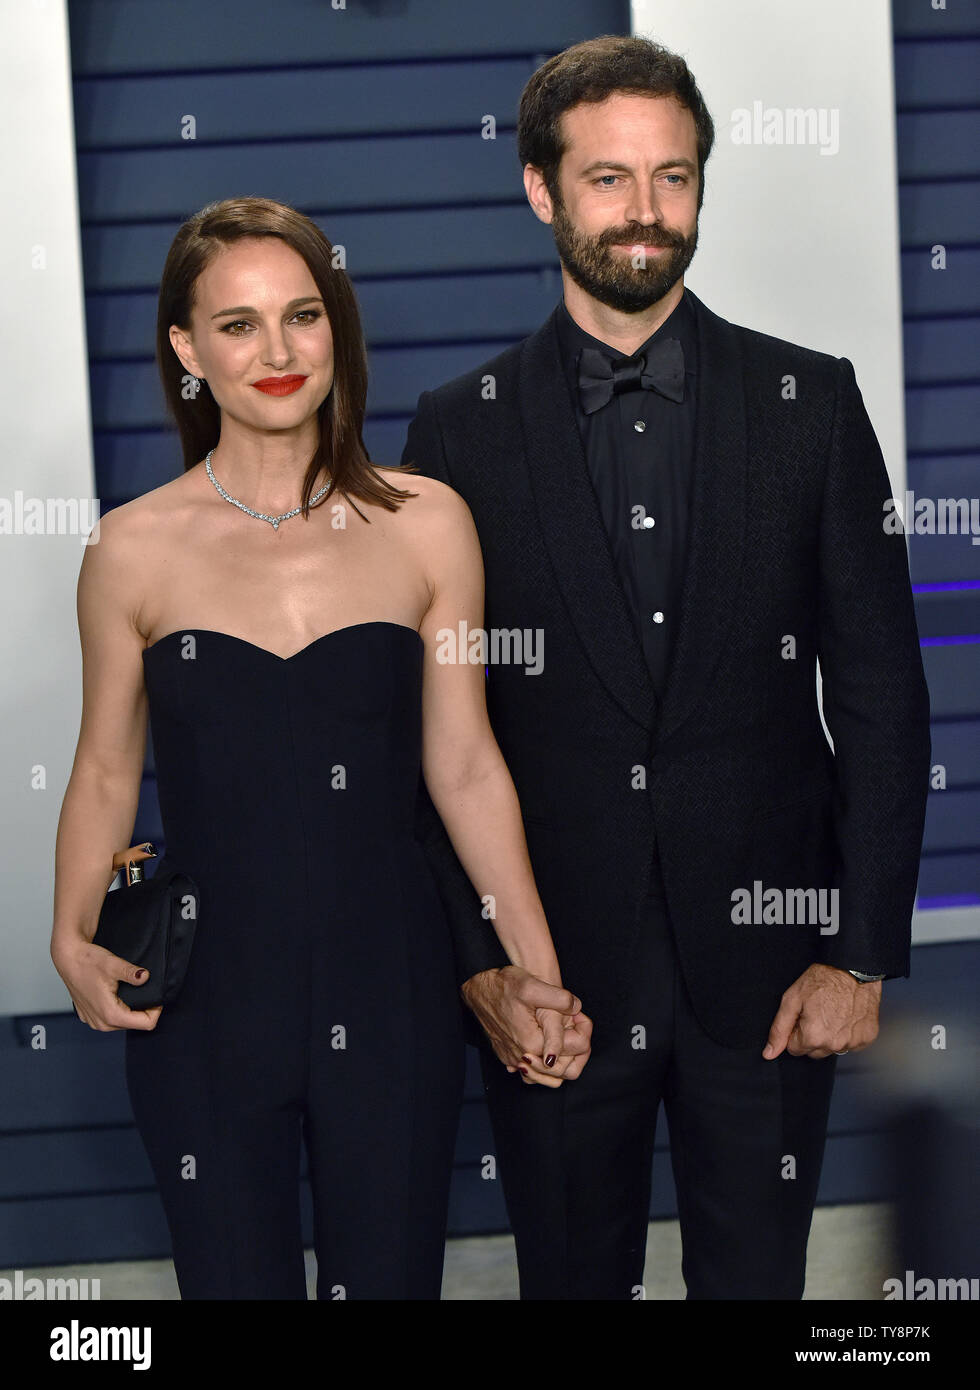 Natalie Portman L And Her Husband Benjamin Millepied Arrive For The Vanity Fair Oscar Party At The Wallis Annenberg Center For The Performing Arts In Beverly Hills California On February 24 2019